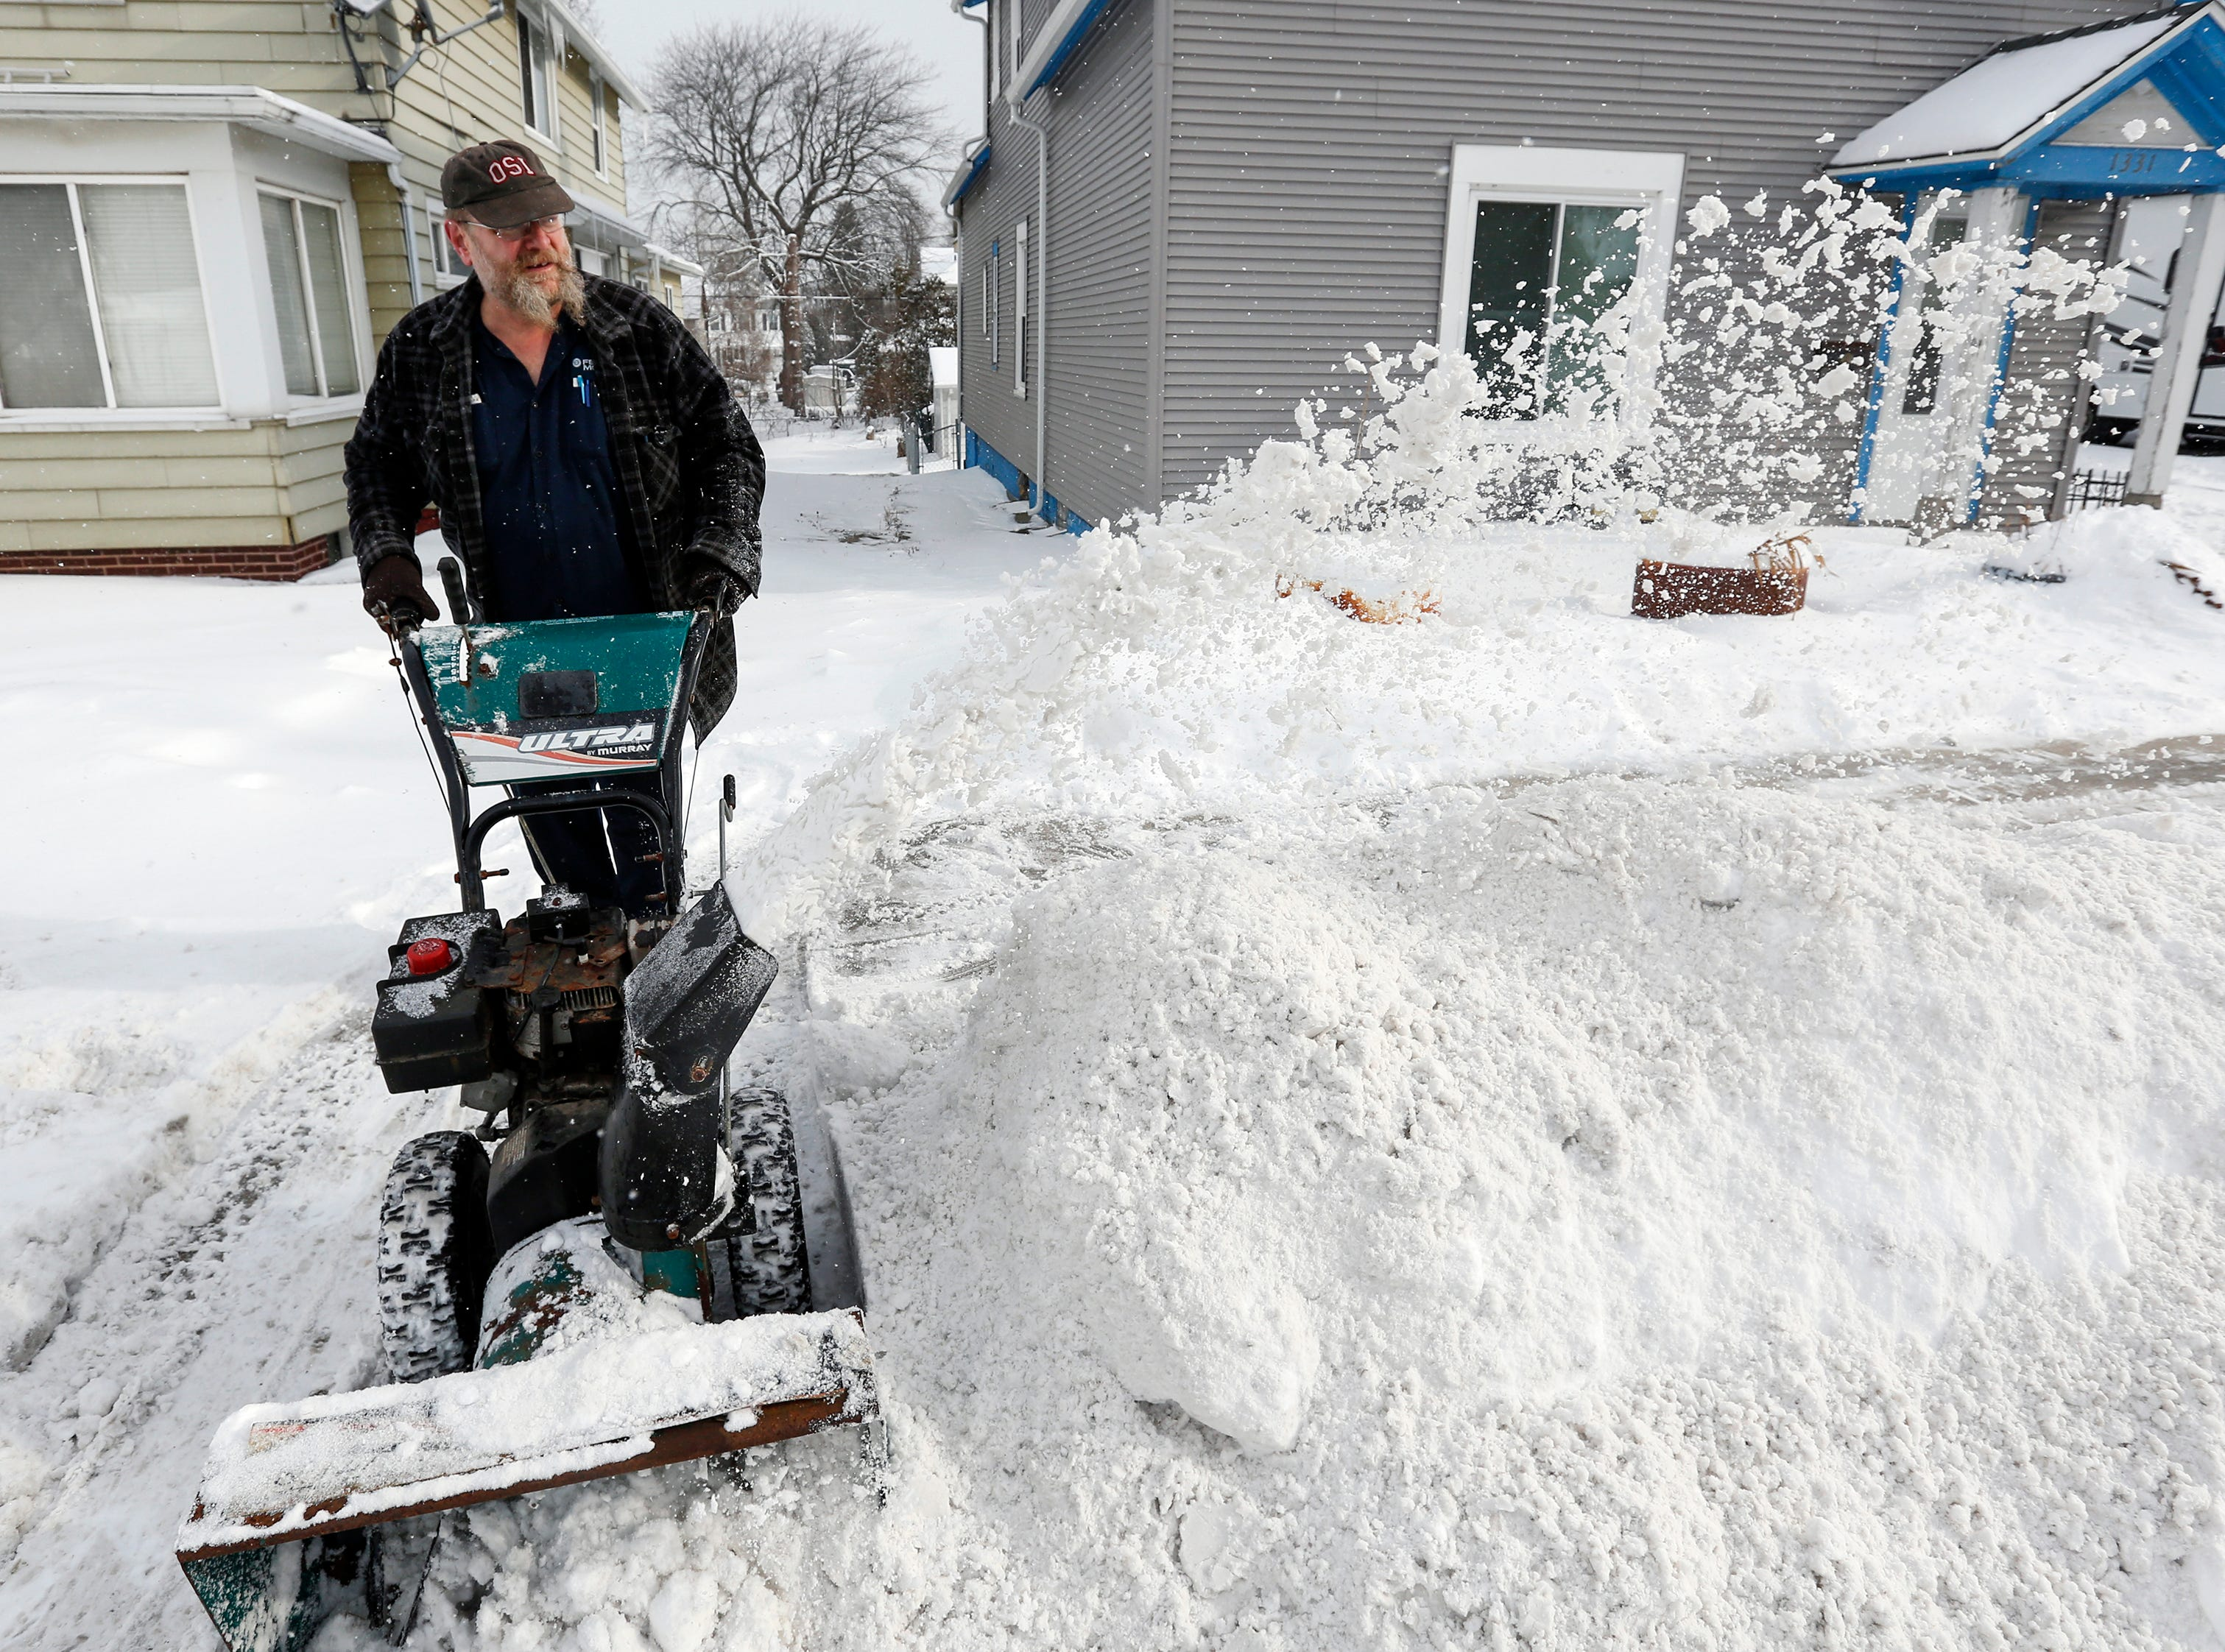 Jeff Pagels, of Manitowoc, clears his driveway after a snowstorm Wednesday, January 23, 2019, in Manitowoc, Wis. Joshua Clark/USA TODAY NETWORK-Wisconsin